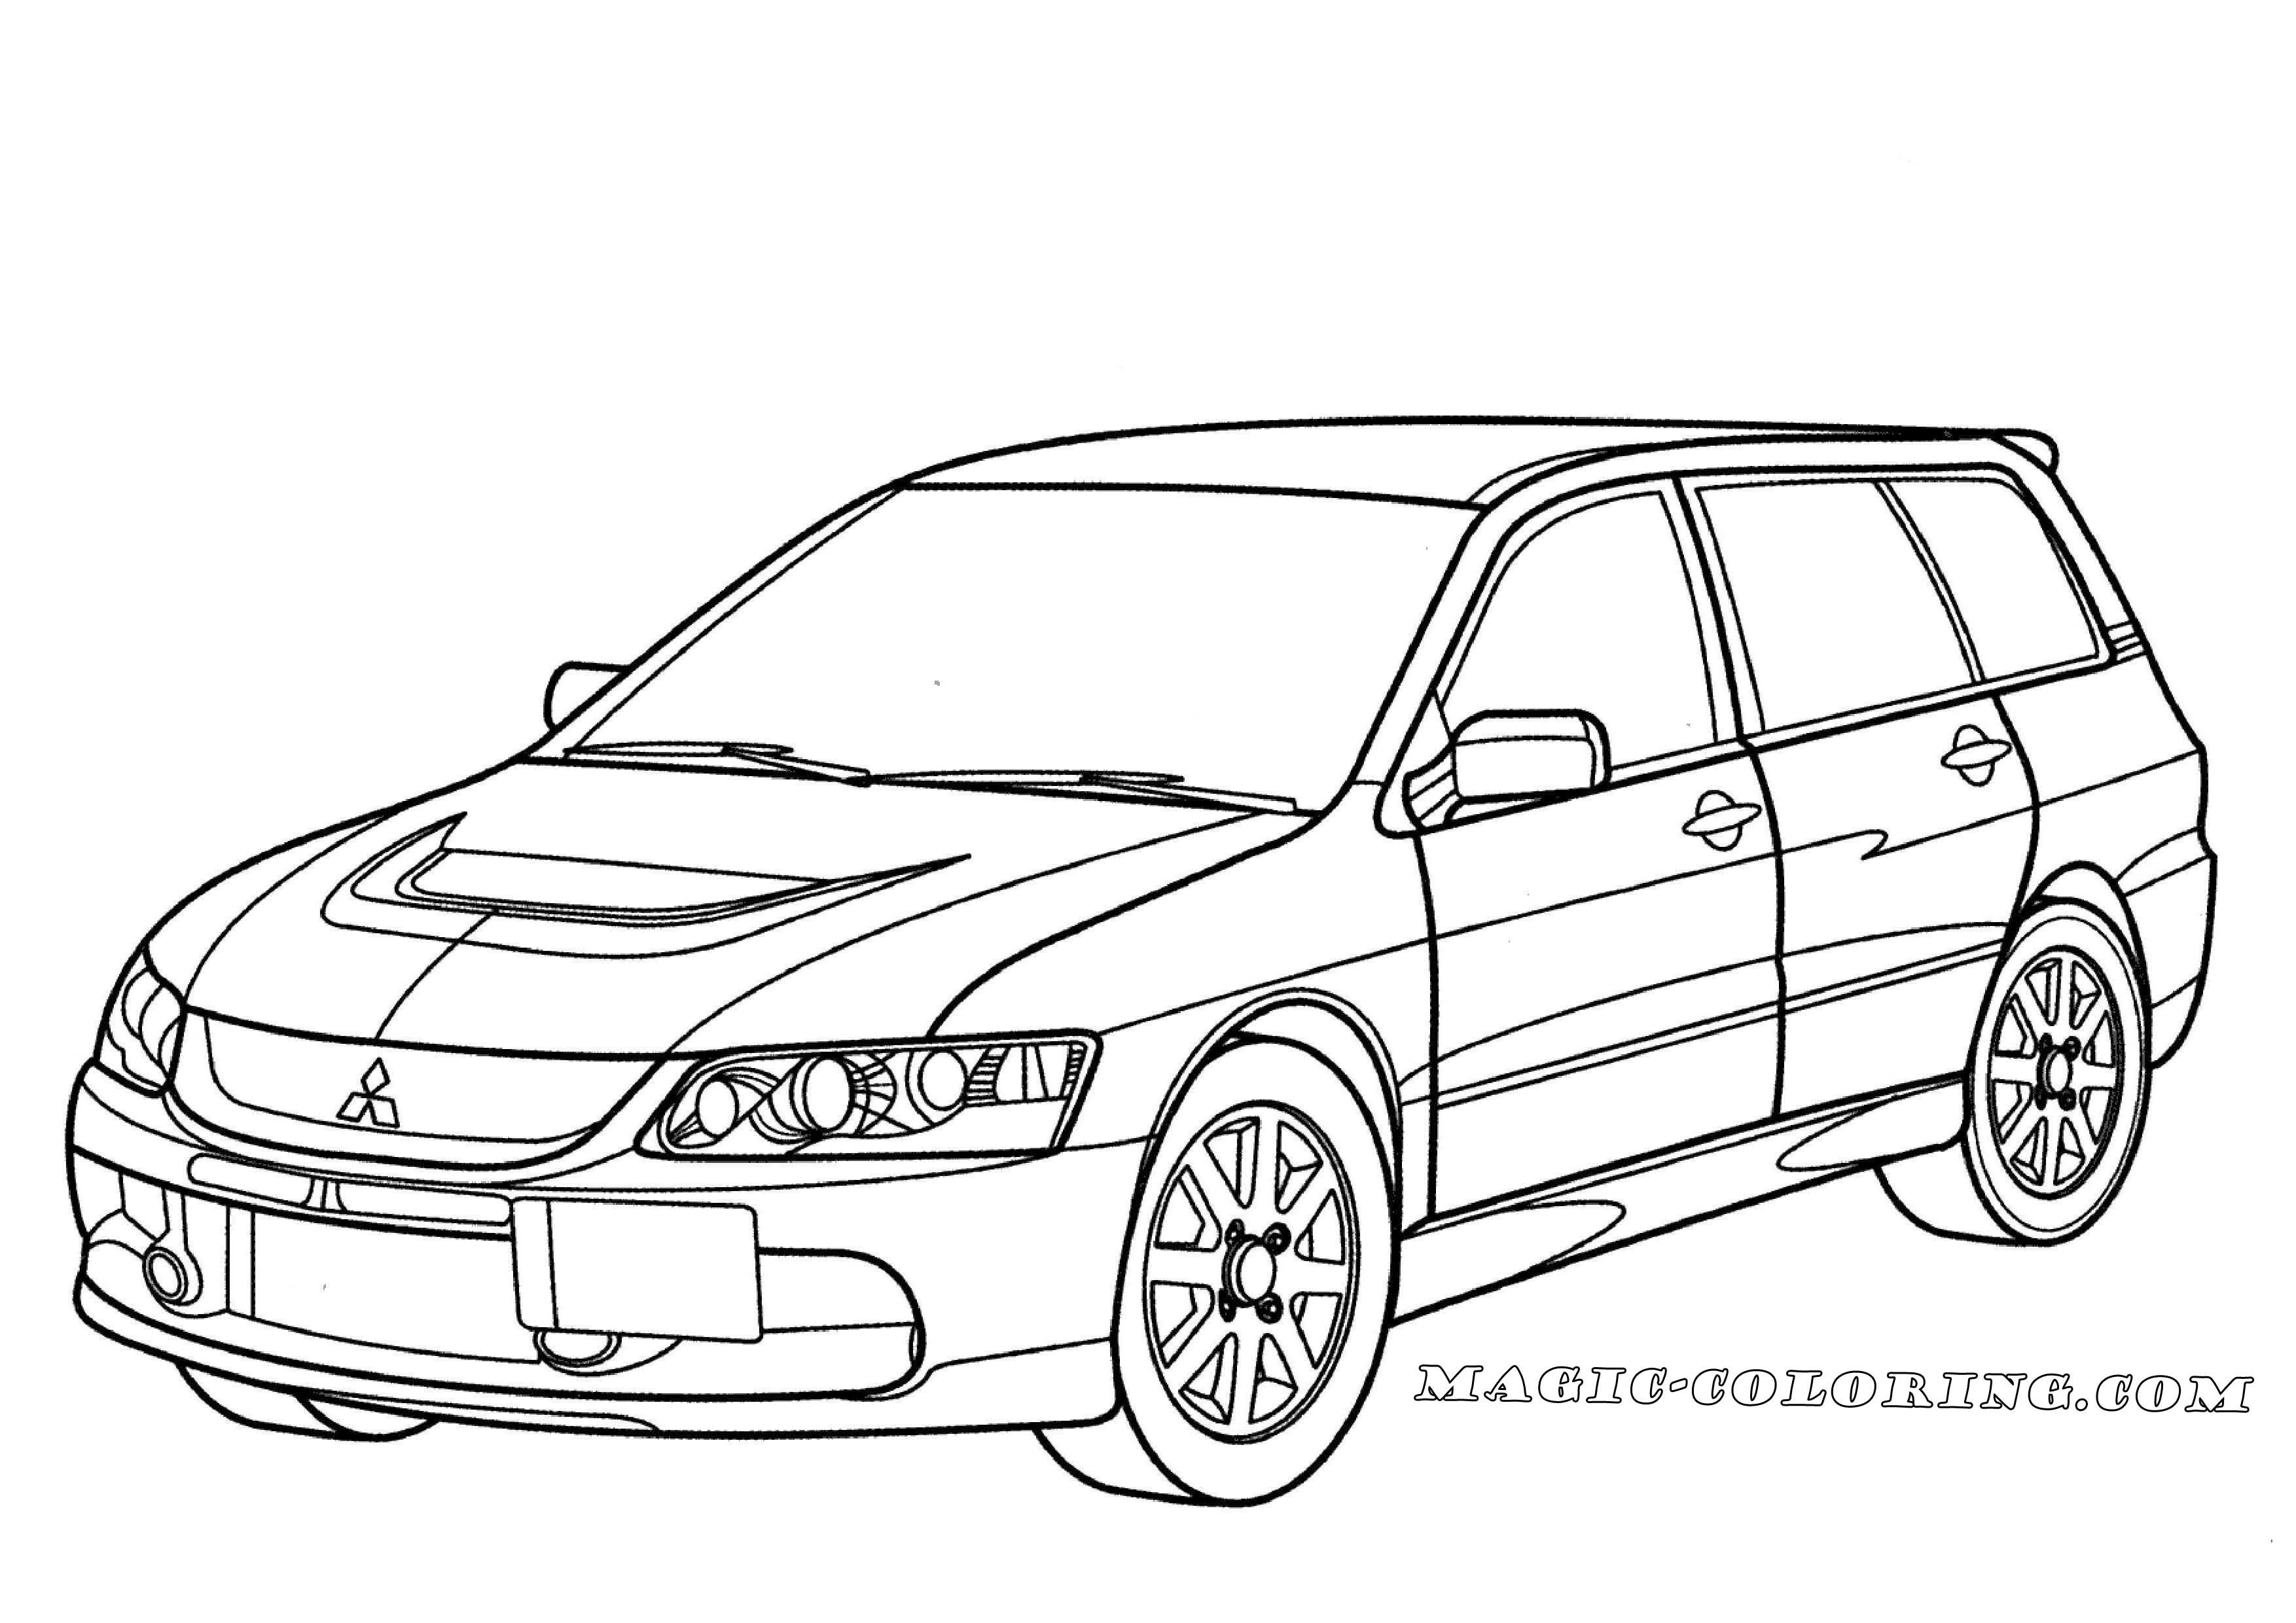 Nascar Coloring Pages Jeff Gordon Nascar Coloring Pages Montinho